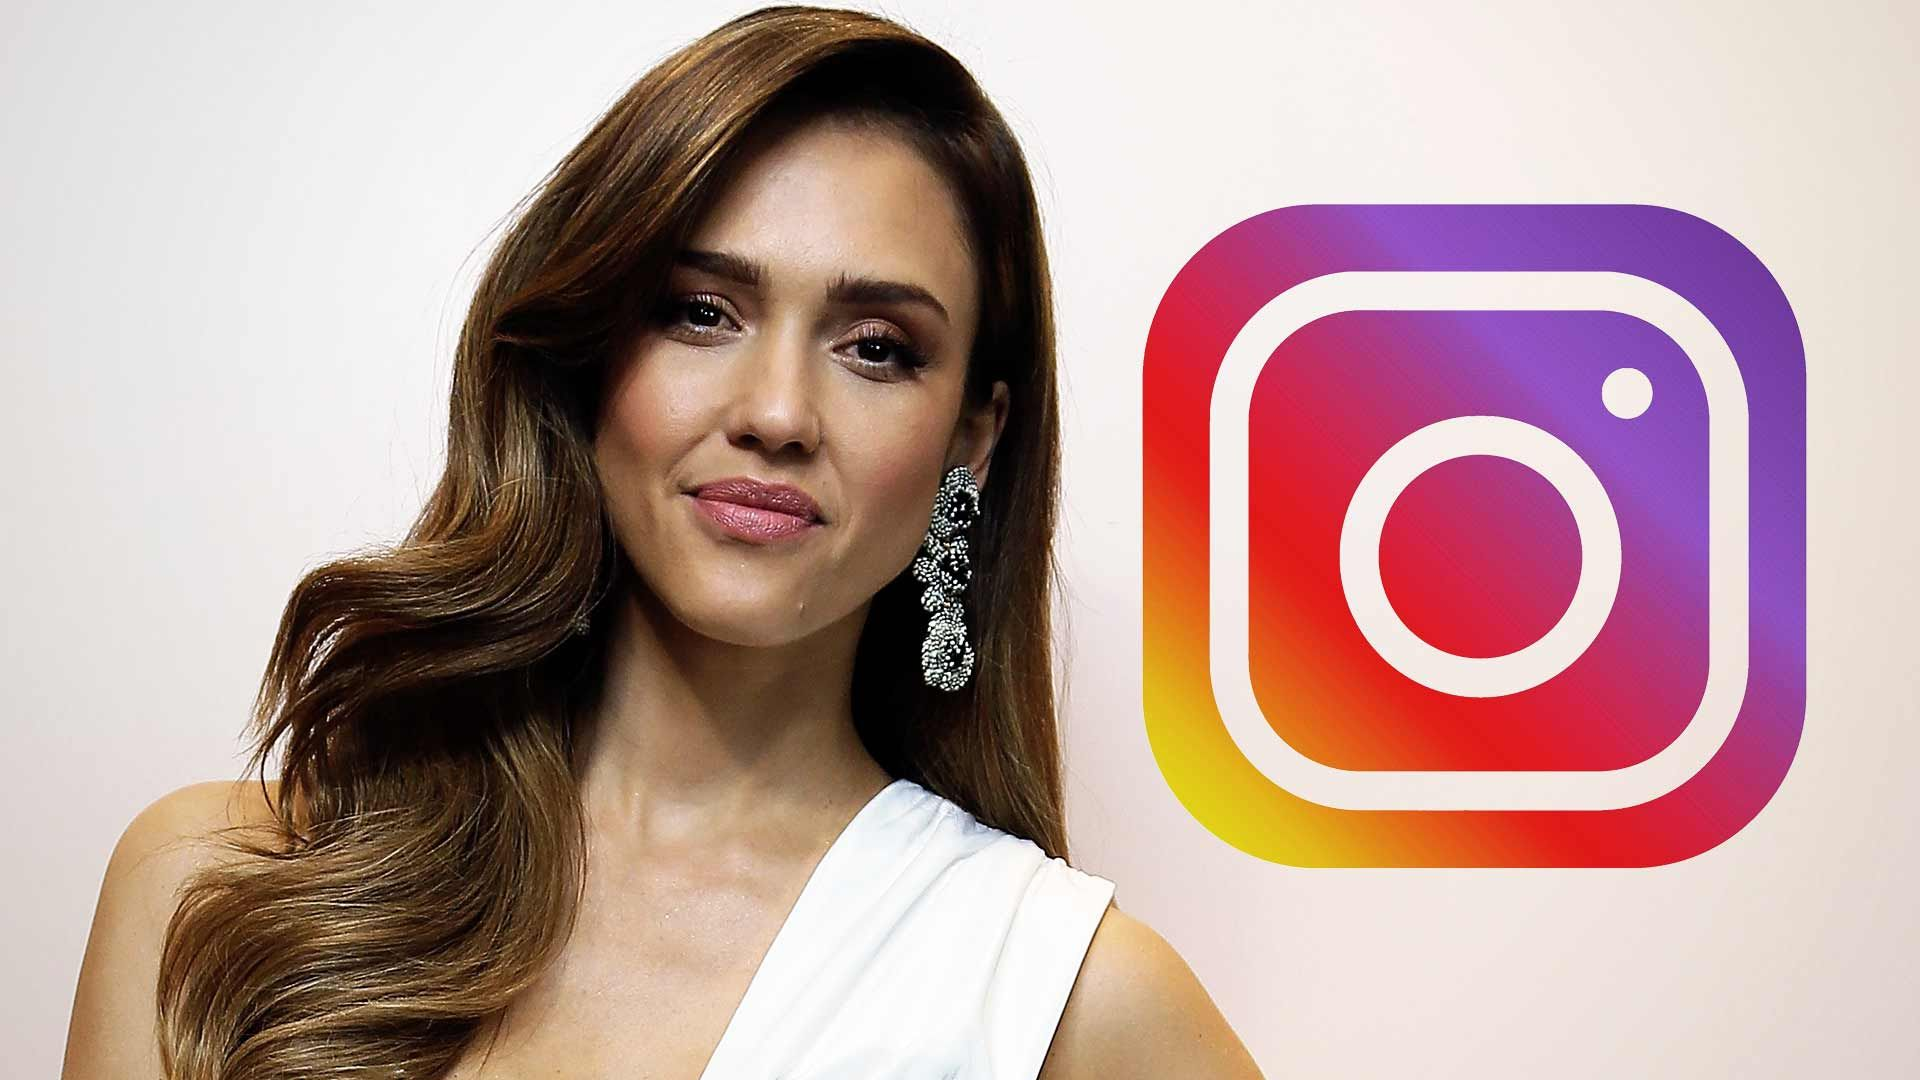 Jessica Alba's Instagram Hacked AGAIN, Filled With Anti